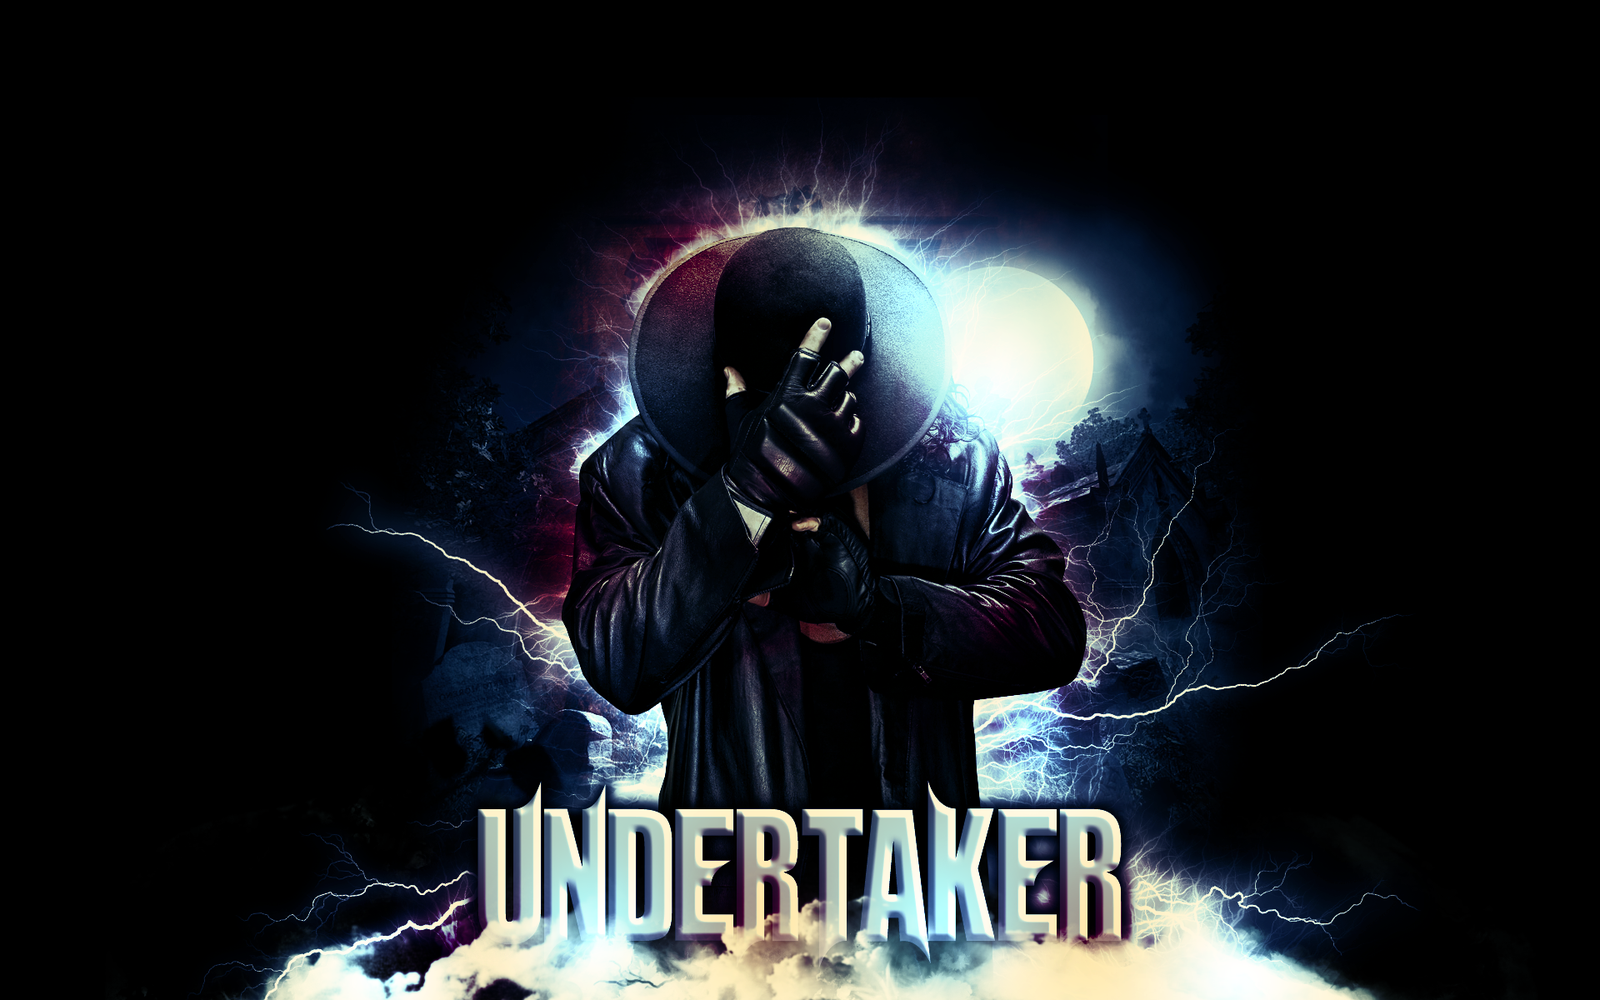 Undertaker | Live HD Undertaker Wallpapers, Photos